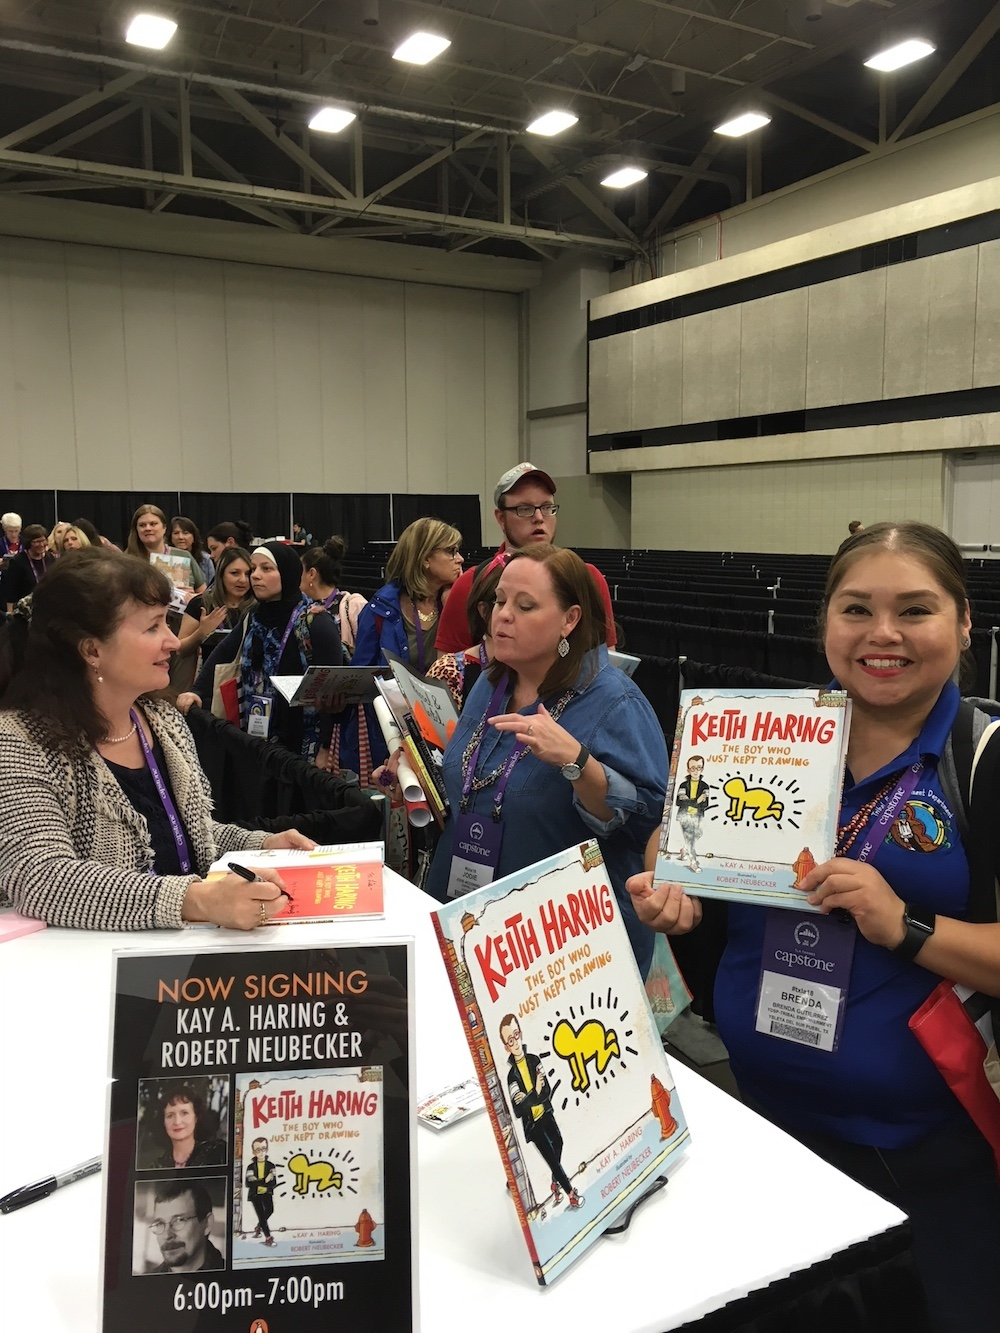 Another big line for signing on the convention floor. Thanks to Kay and Penguin Random House, the TLA and all those Texas librarians!